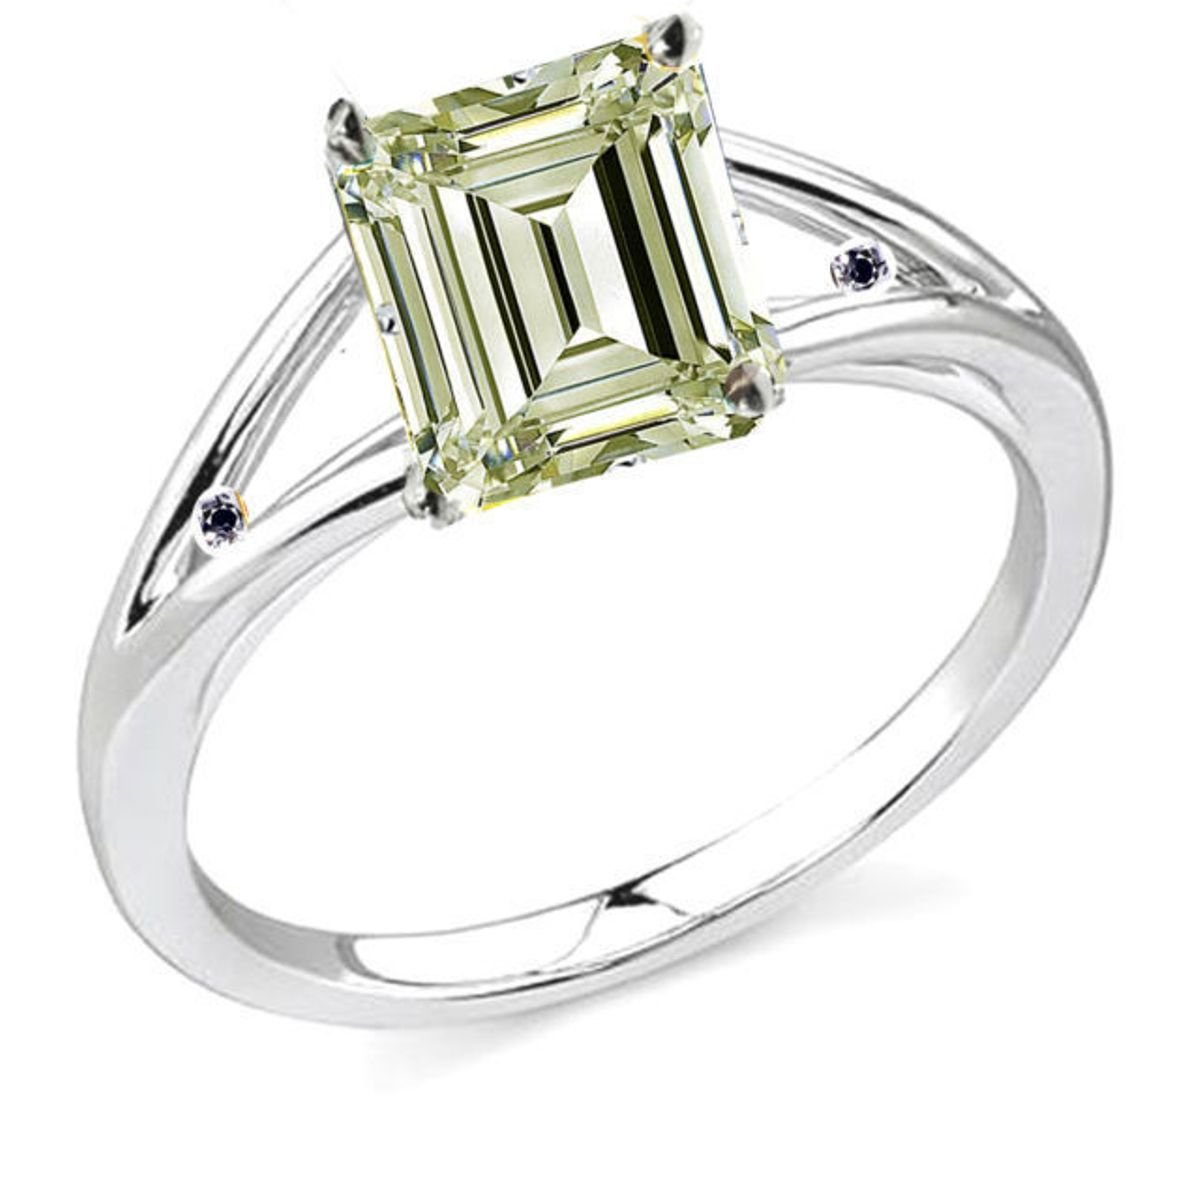 RINGJEWEL 1.70 ct SI2 Emerald Moissanite Engagement Silver Plated Ring White Yellow Color Size 7.50 by RINGJEWEL